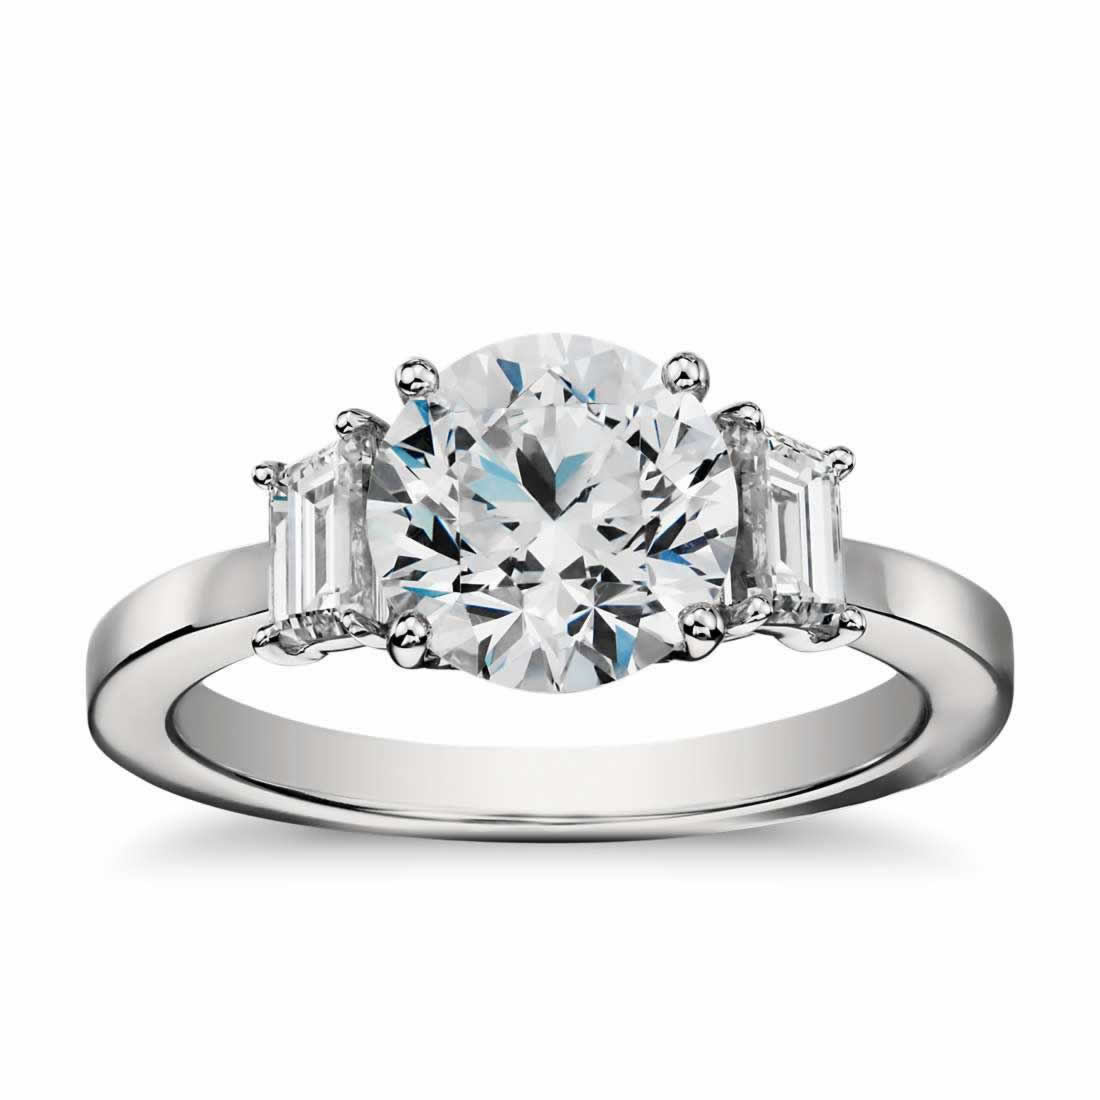 Step Cut Baguette Diamond Engagement Ring